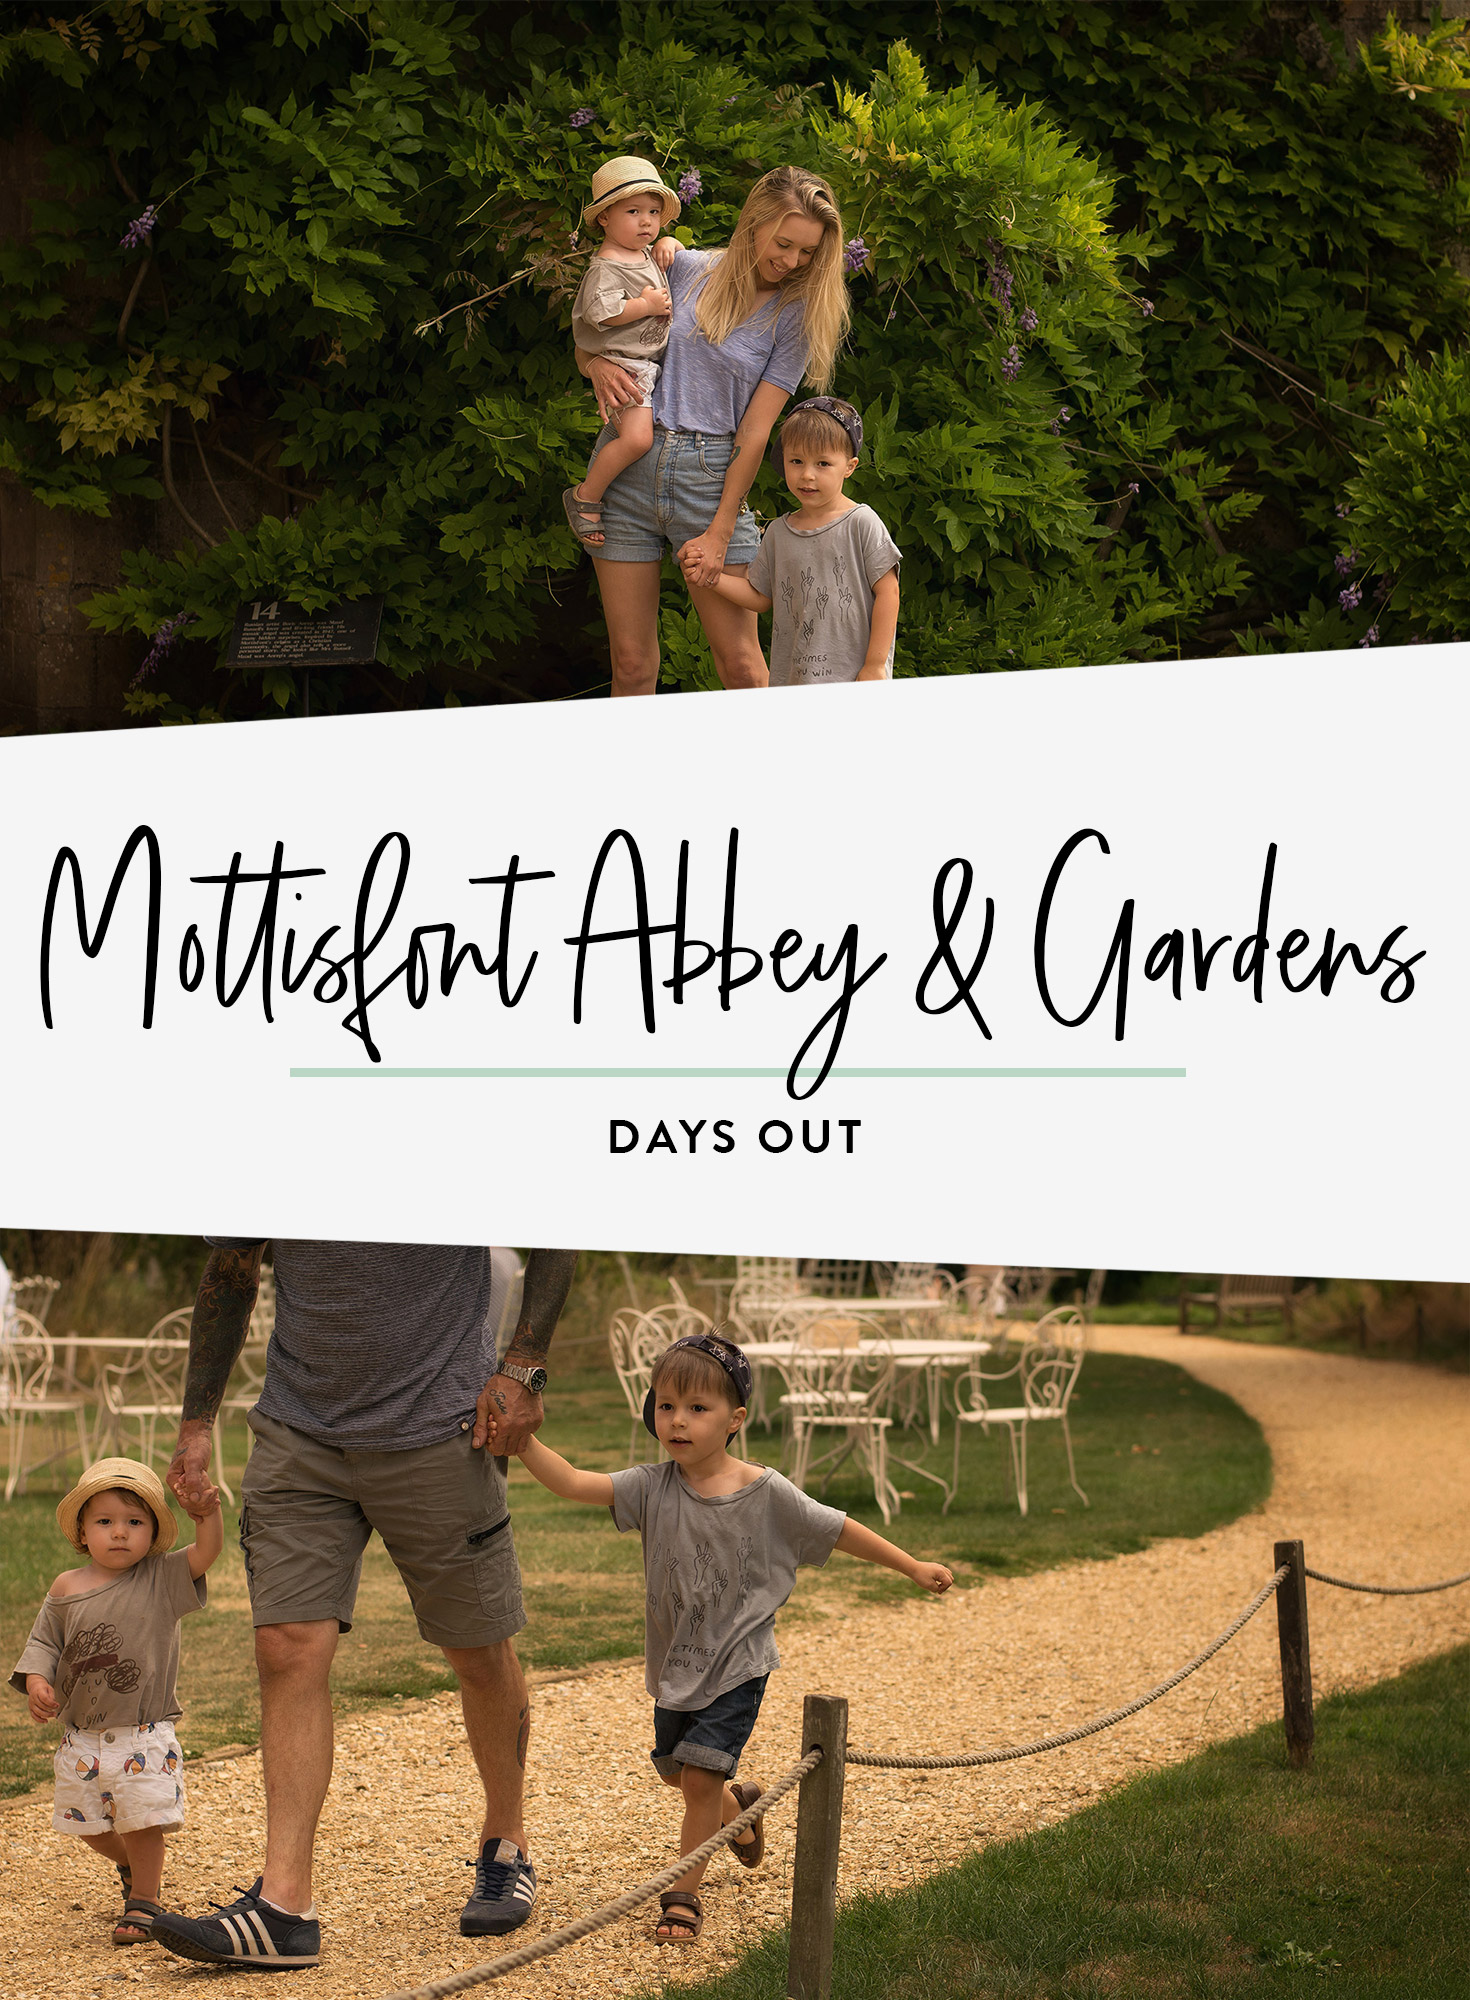 A family fay out at Mottisfont Abbey & Gardens, National Trust in Hampshire